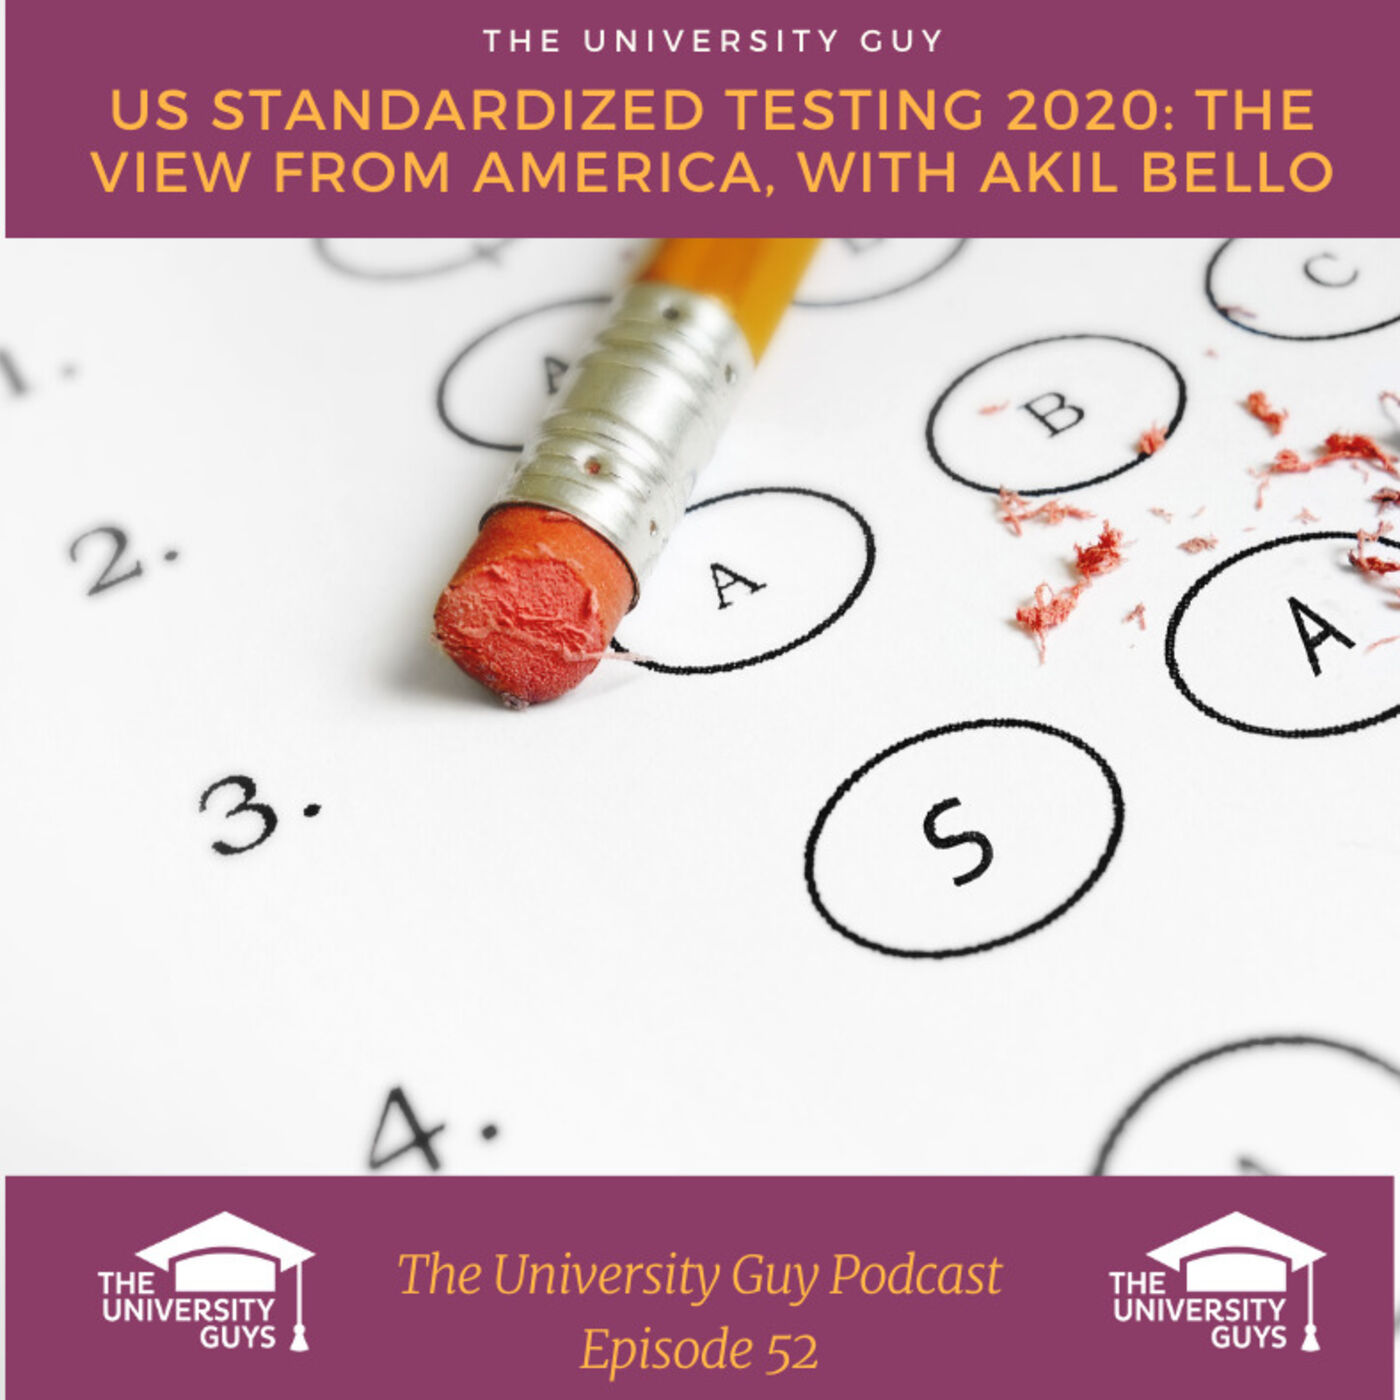 Episode 52: US Standardized Testing 2020. The view from America, with Akil Bello